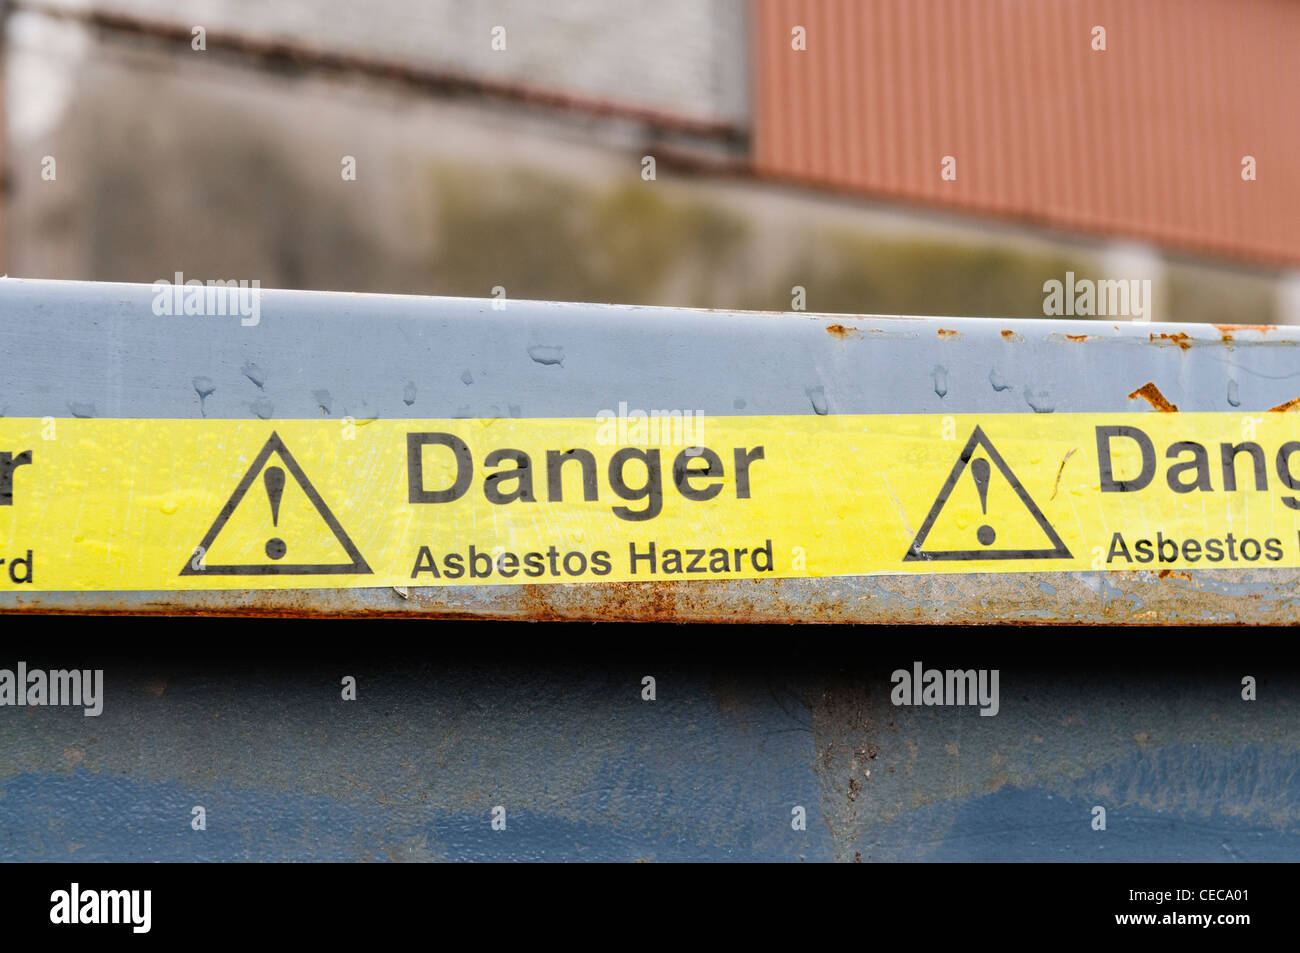 Warning tape across a bin at an Asbestos clean-up - Stock Image